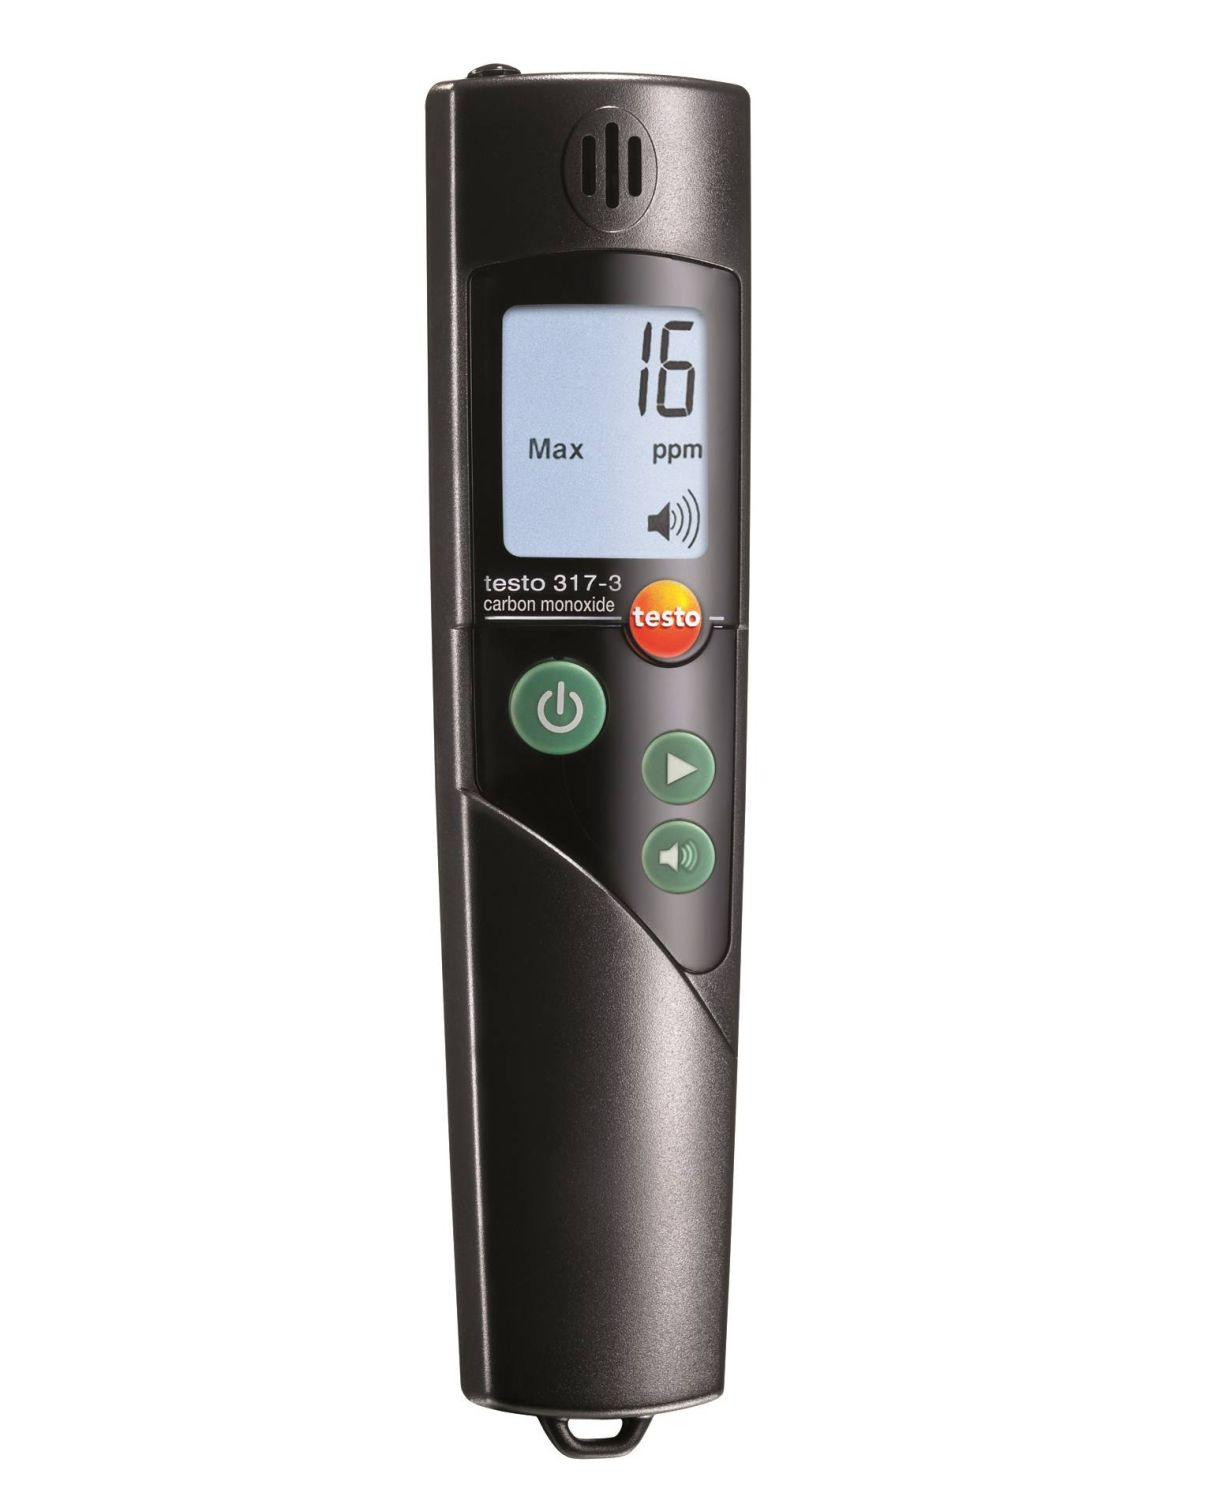 Testo 317-3 - CO detector for measuring CO in the surrounding air